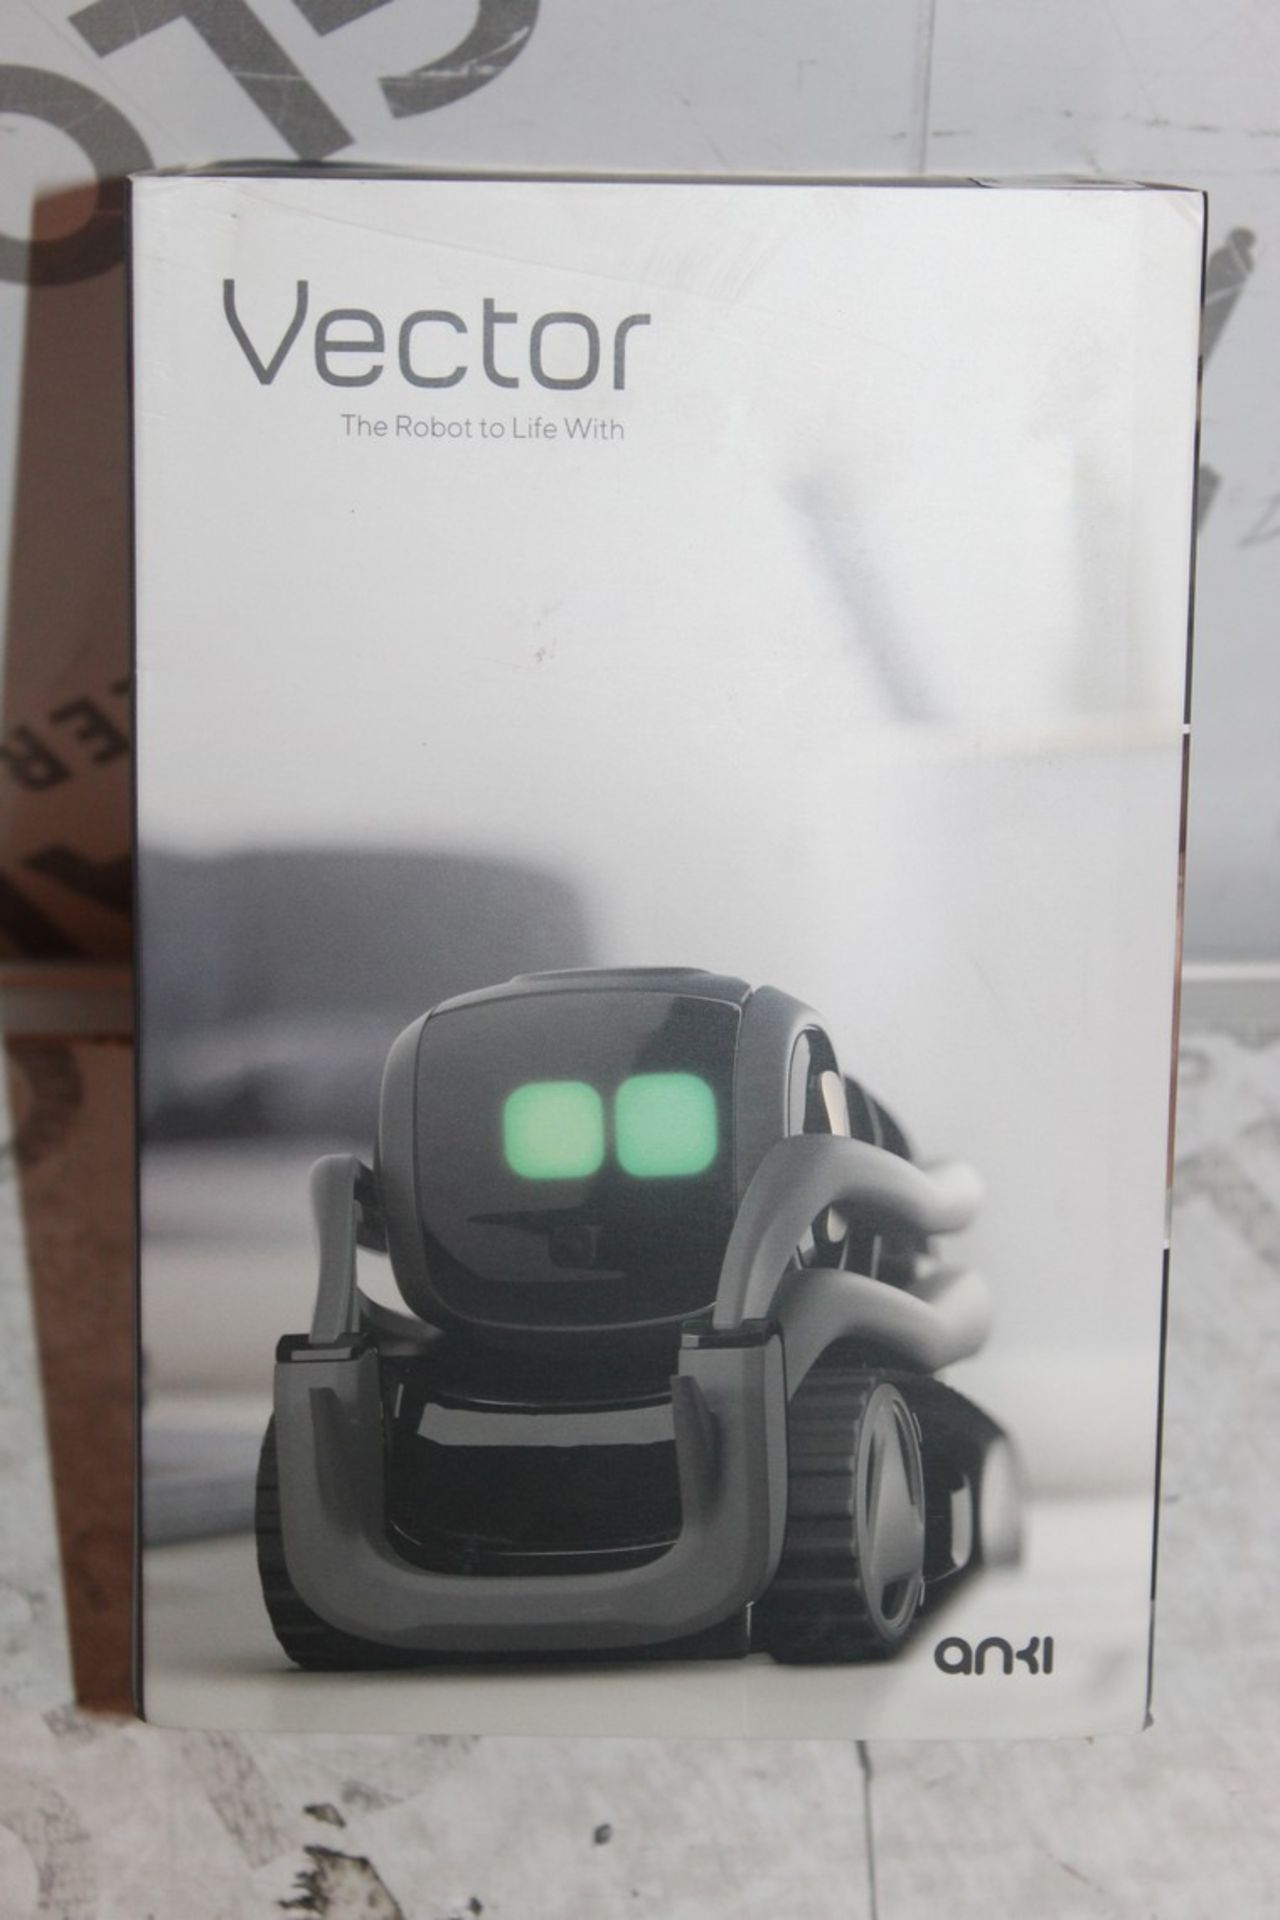 Lot 39 - Boxed ANKI VCTR, App Enabled Robotic Droid, RRP£250.00